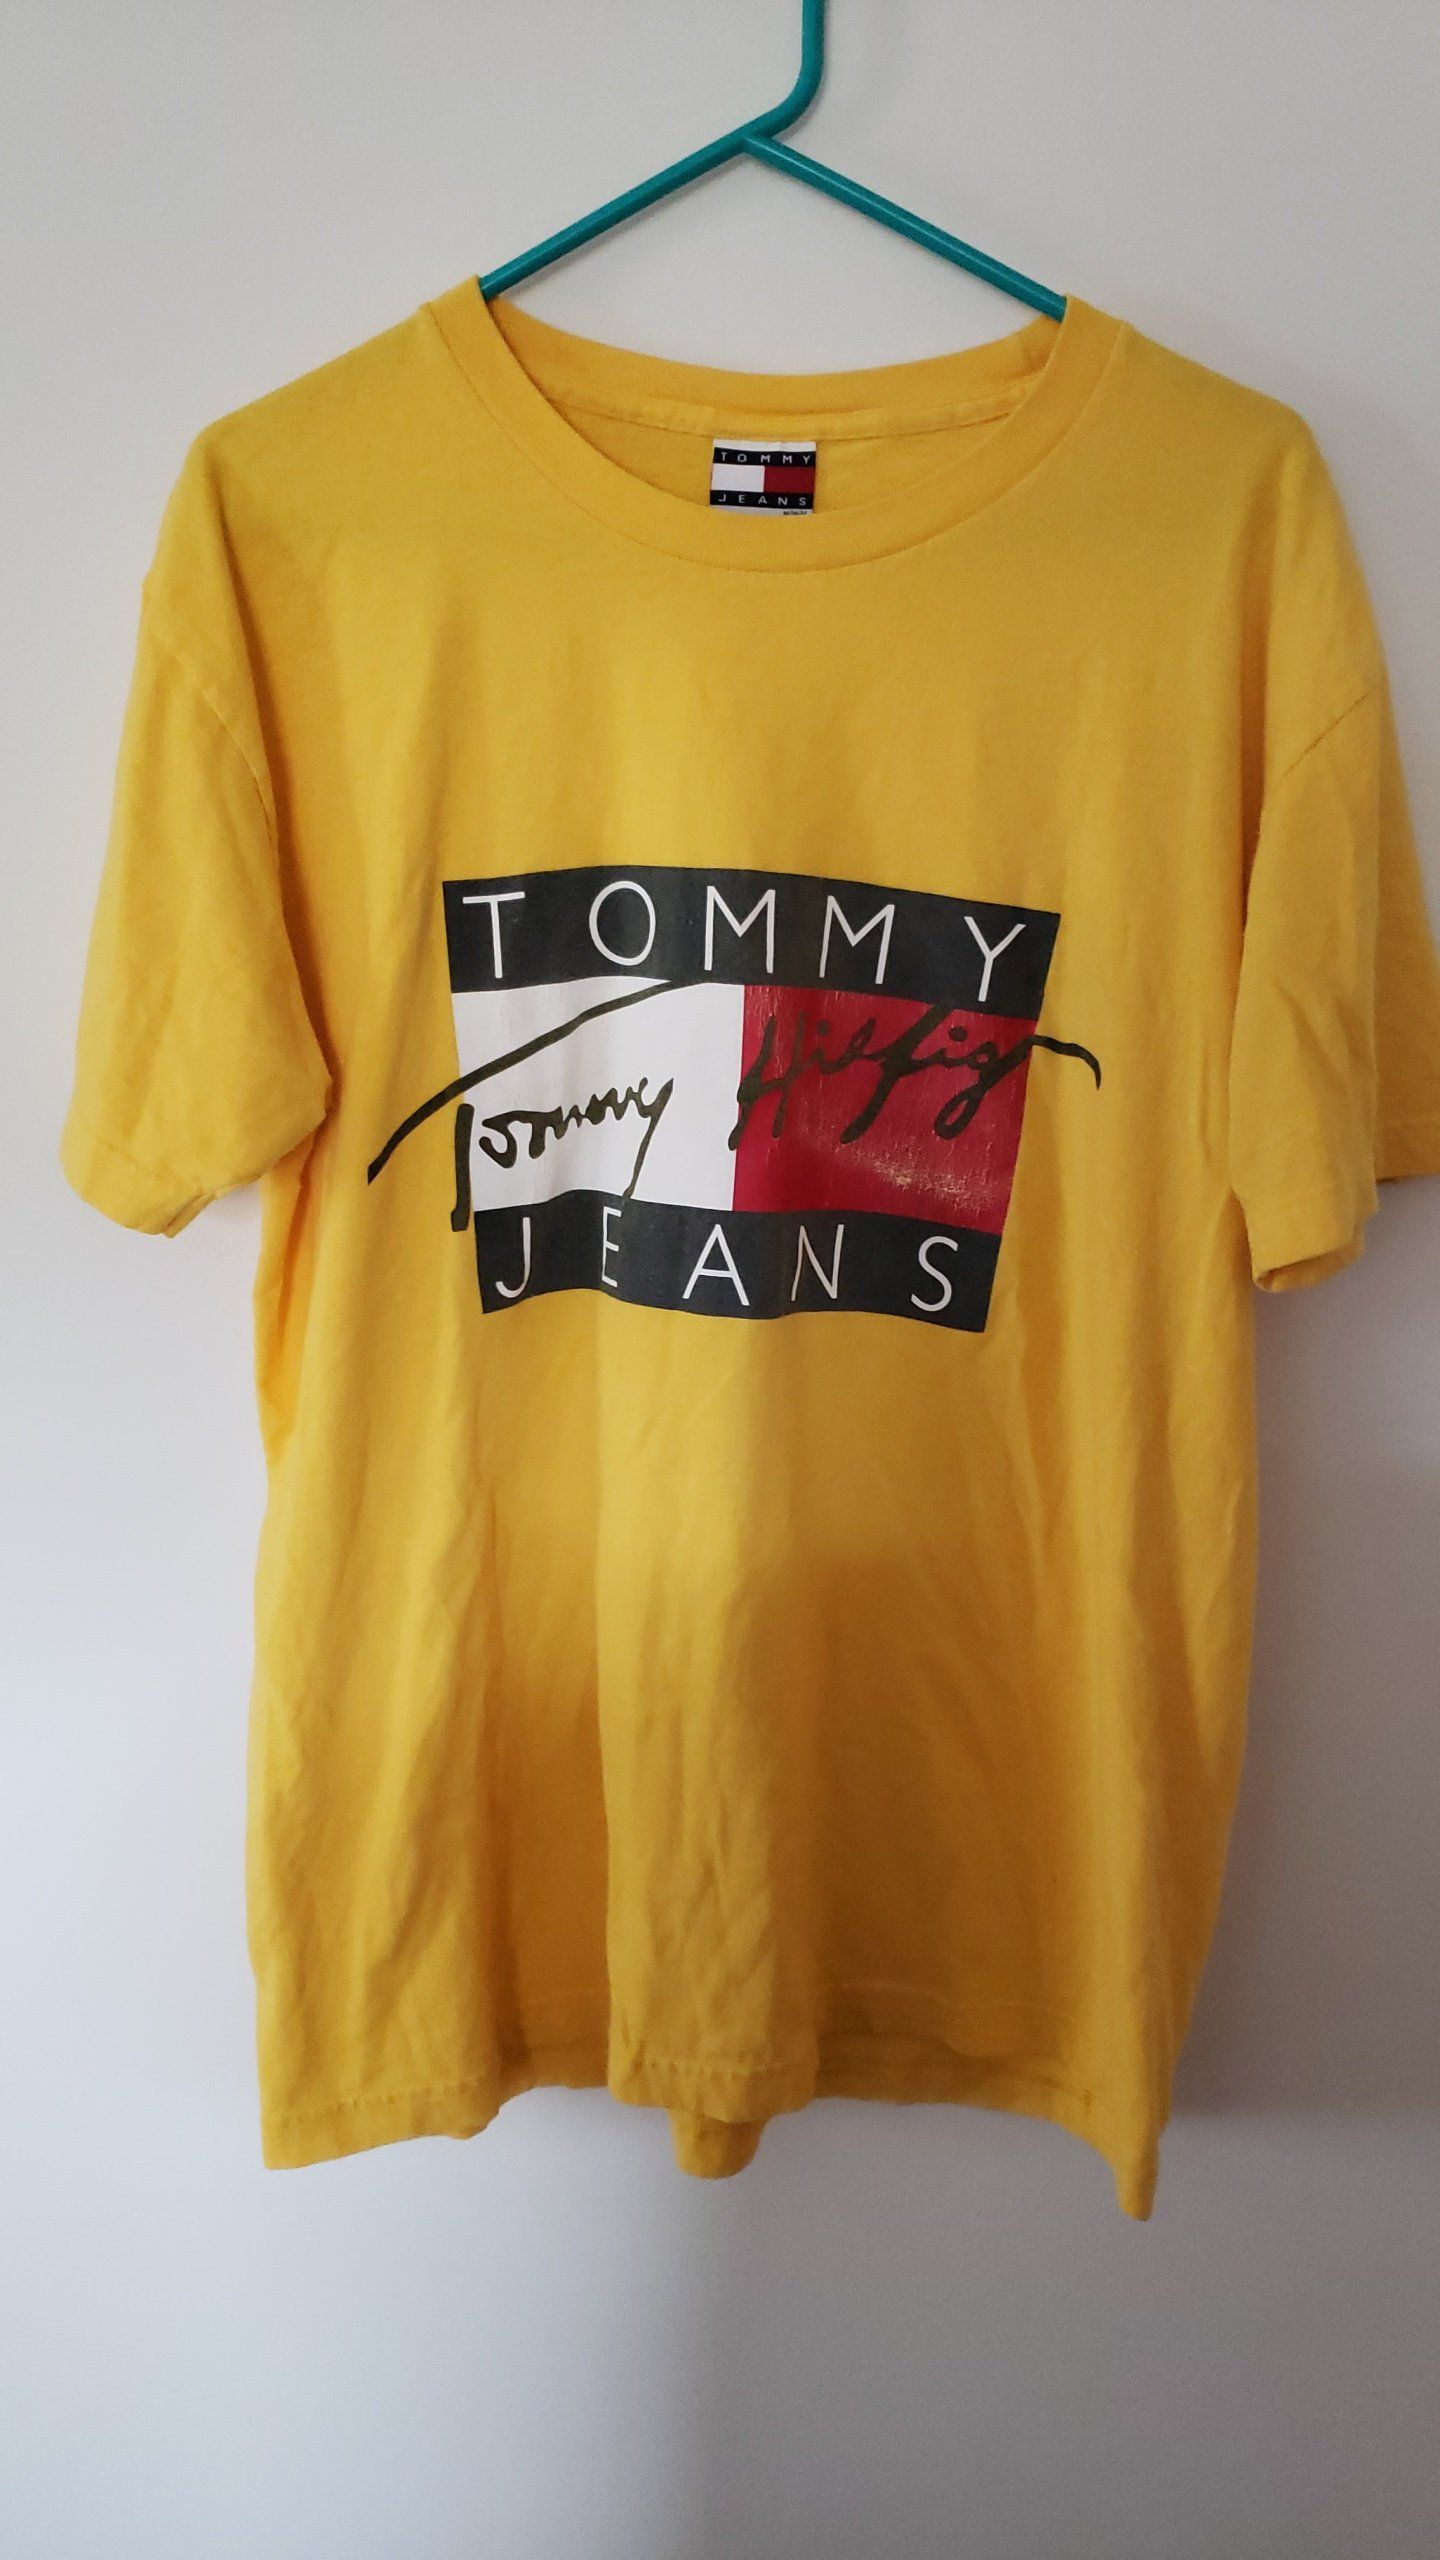 1ffafee4ae8 Vintage 90 s Tommy Hilfiger Jeans Yellow Big Logo Shirt - Size Large by  RackRaidersVtg on Etsy